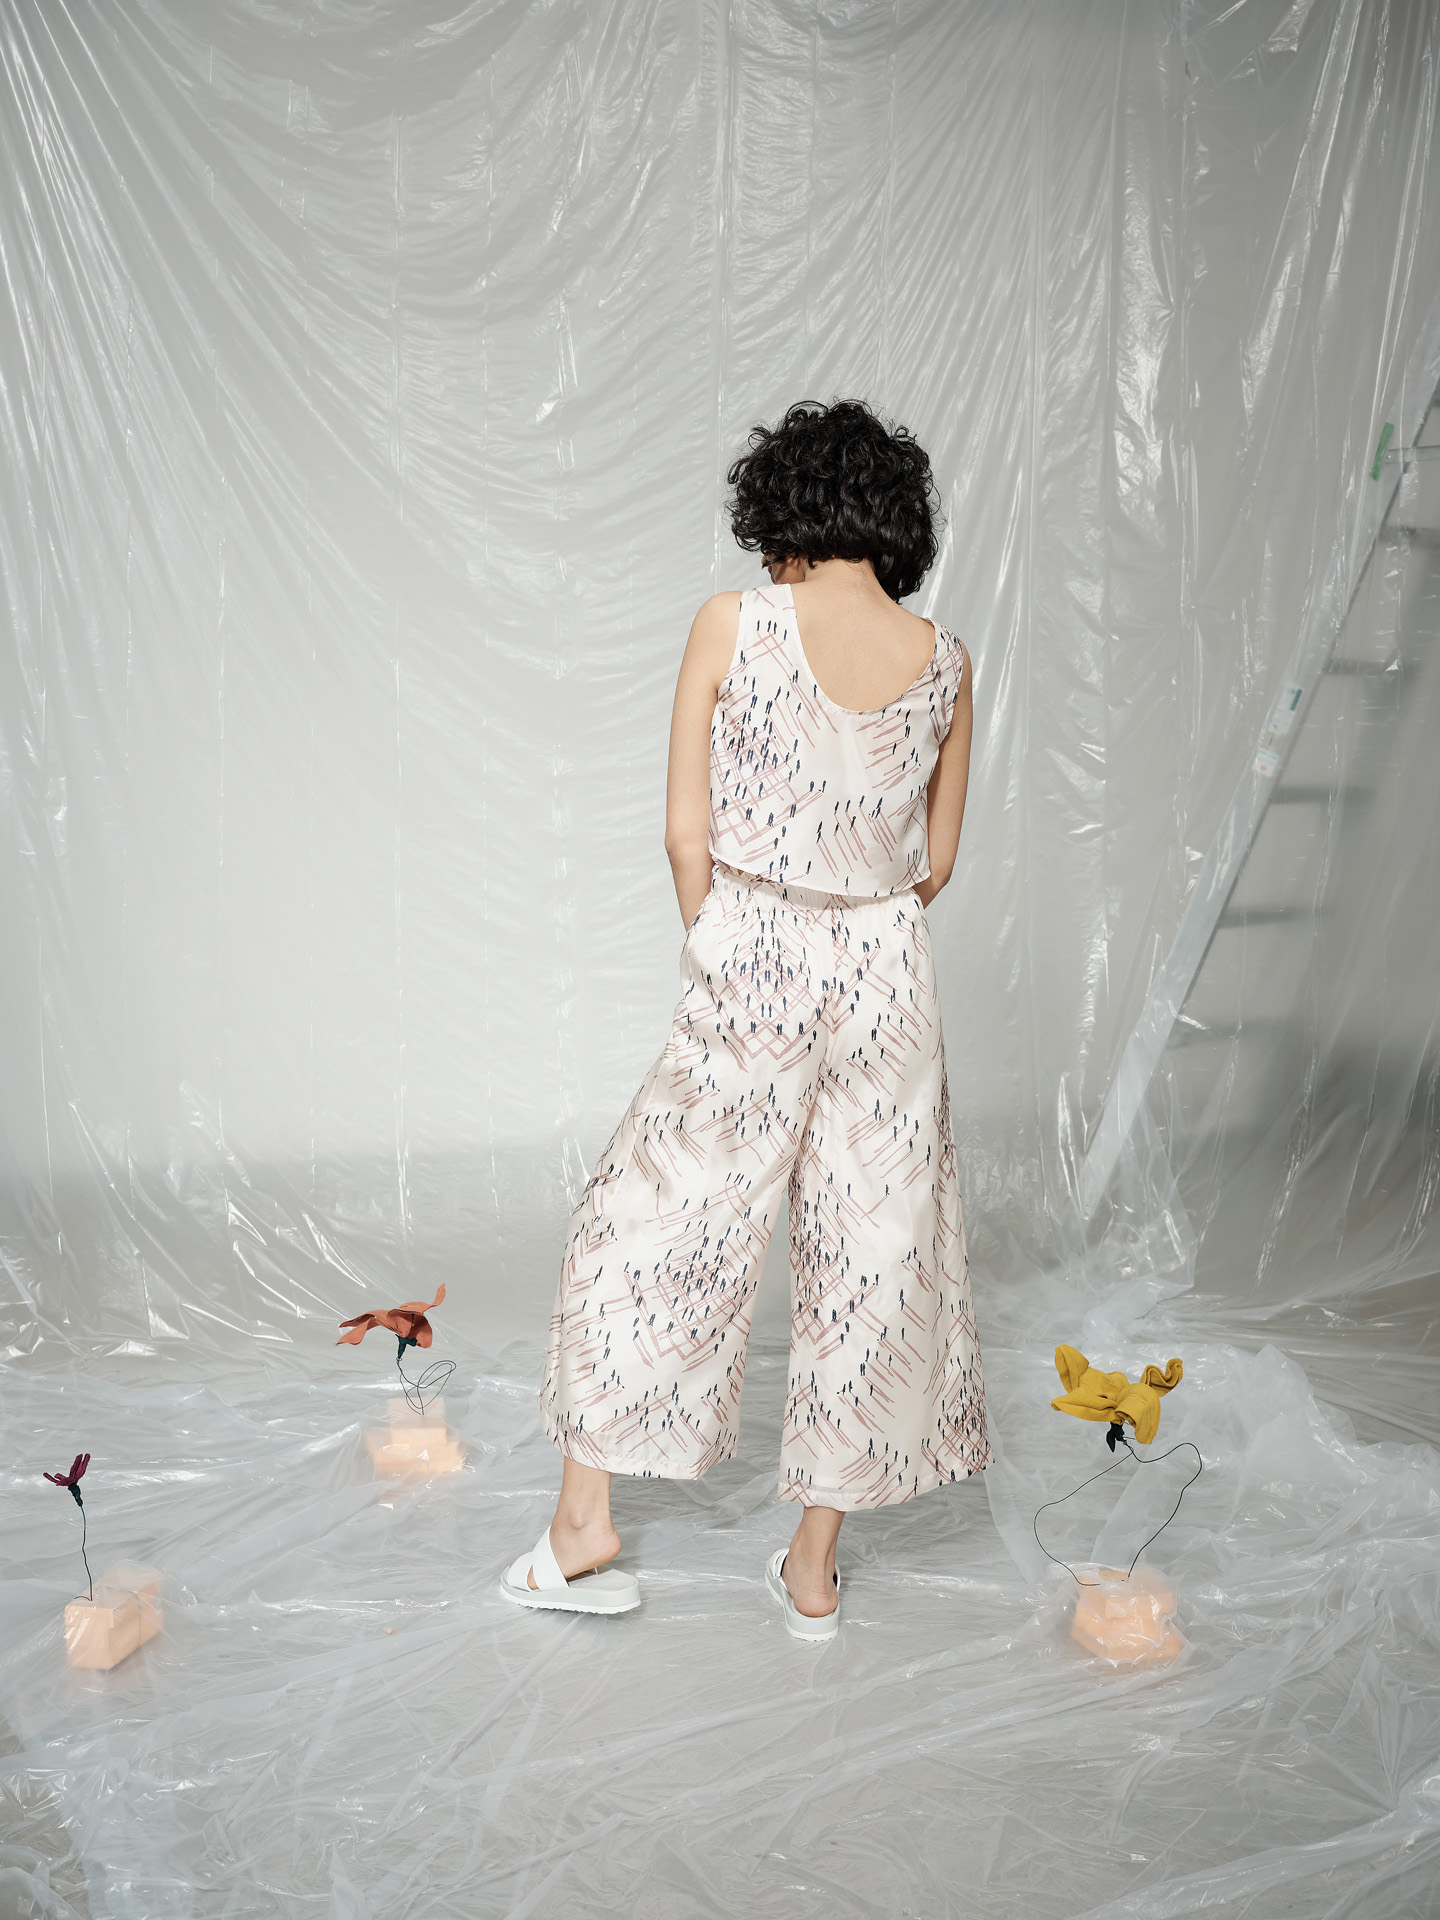 curly haired female model wearing people-printed in blue and soft pink on white fabric ensemble standing from back in room covered in plastic construction sheet looking at camera photographed by Maxyme G Delisle with artistic direction and styling by Studio TB